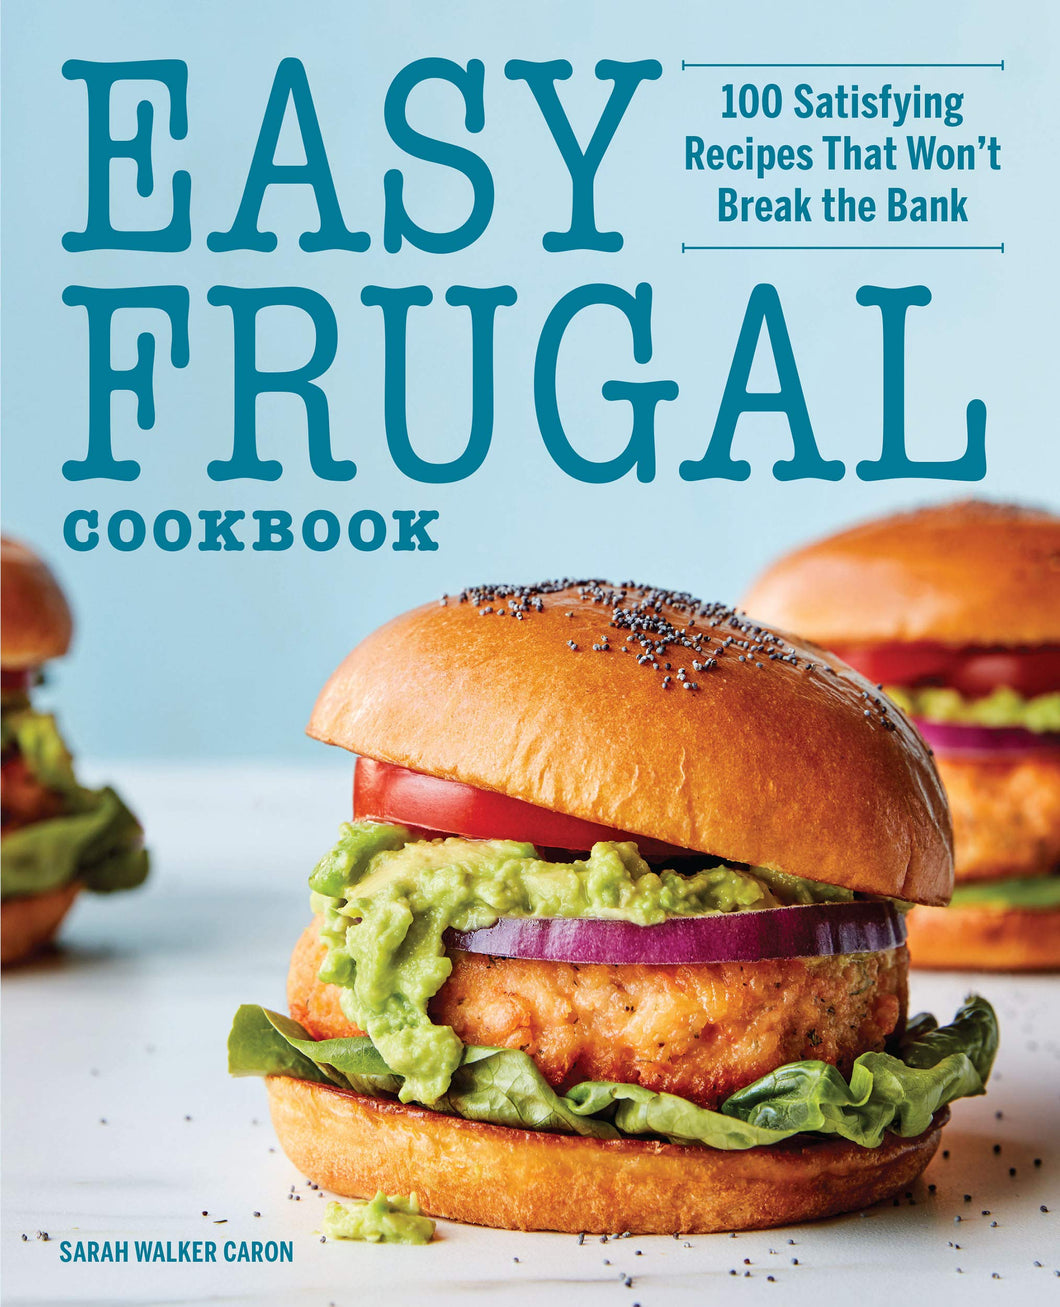 Easy Frugal Cookbook: 100 Satisfying Recipes That Won't Break the Bank - Tolerant Planet